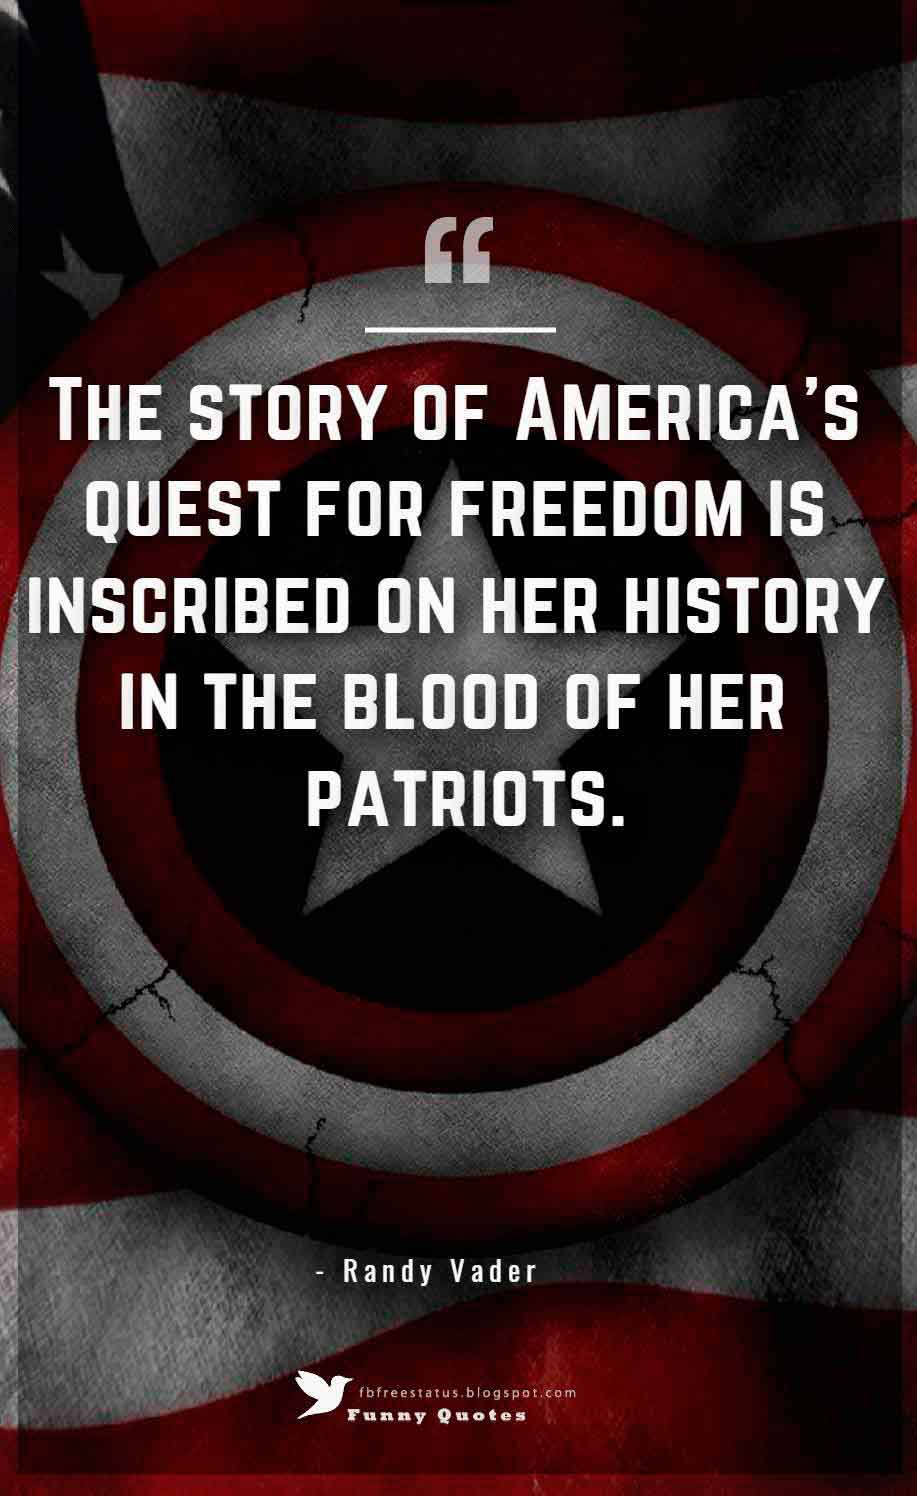 The story of America's quest for freedom is inscribed on her history in the blood of her patriots. ? Randy Vader